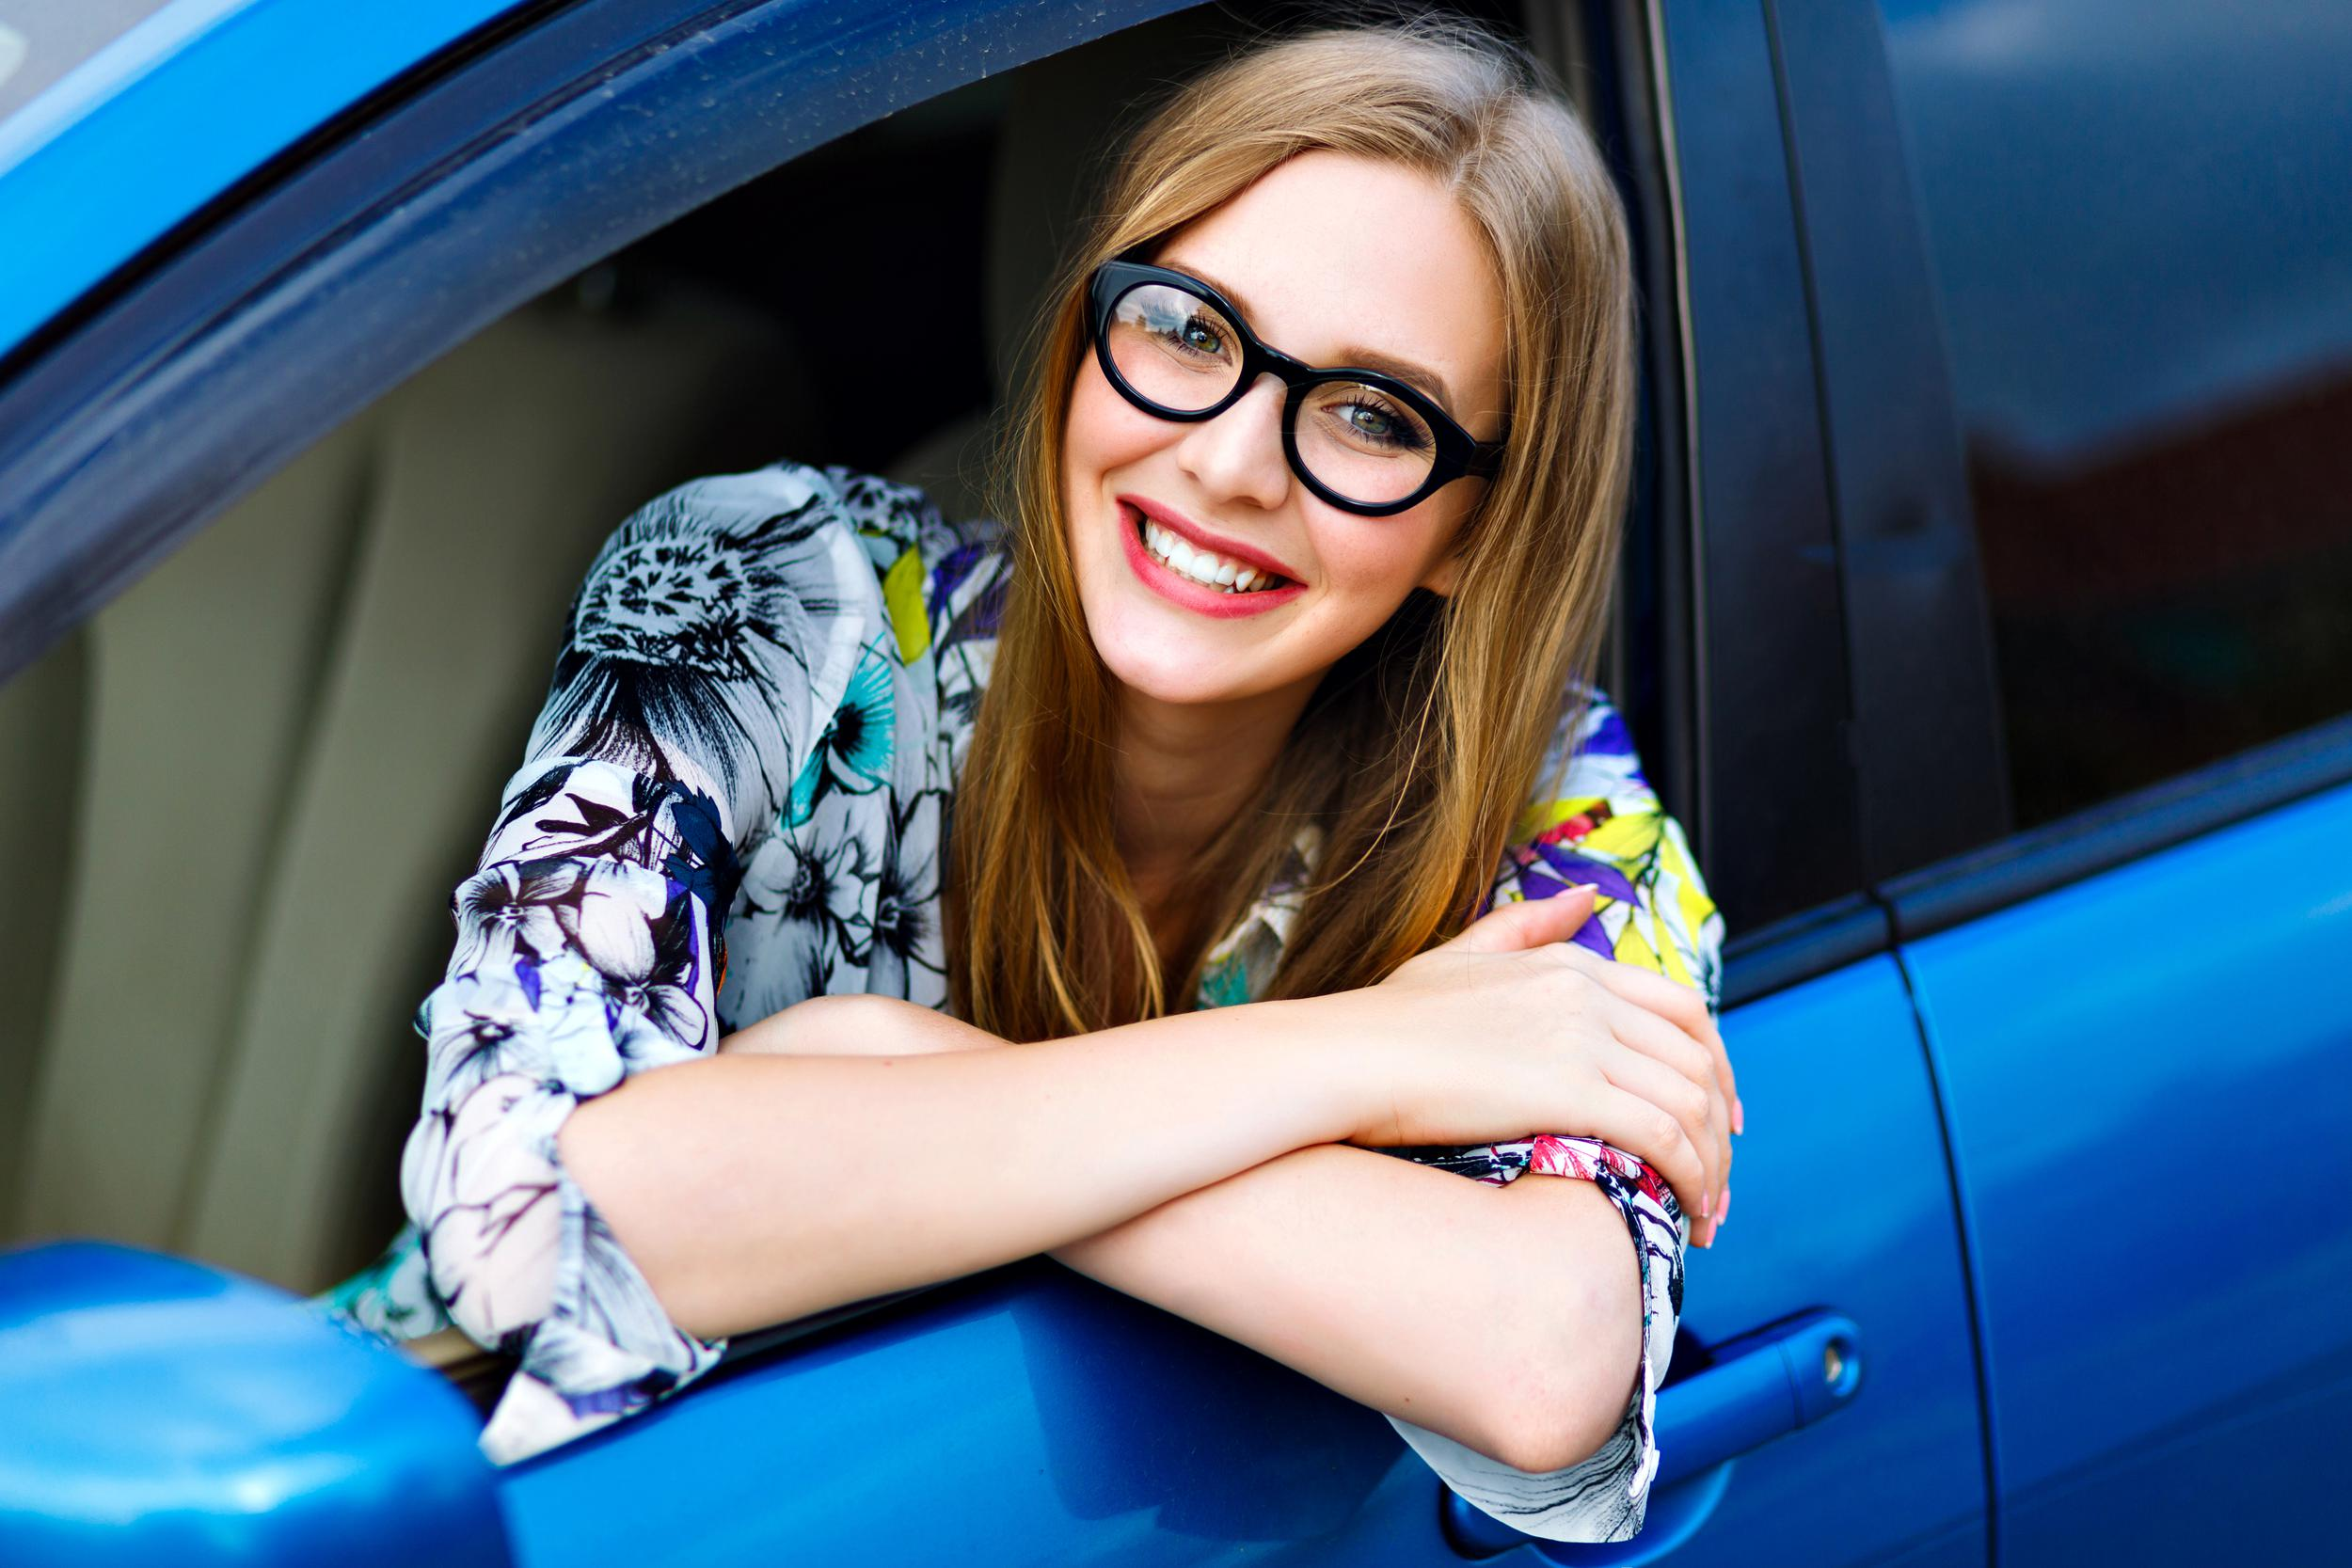 close-up-outdoor-lifestyle-travel-photo-young-blonde-hipster-woman-driving-car-glasses-bright-clothes-big-smile-happy-mood-enjoy-her-nice-day-young-businesswoman.jpg